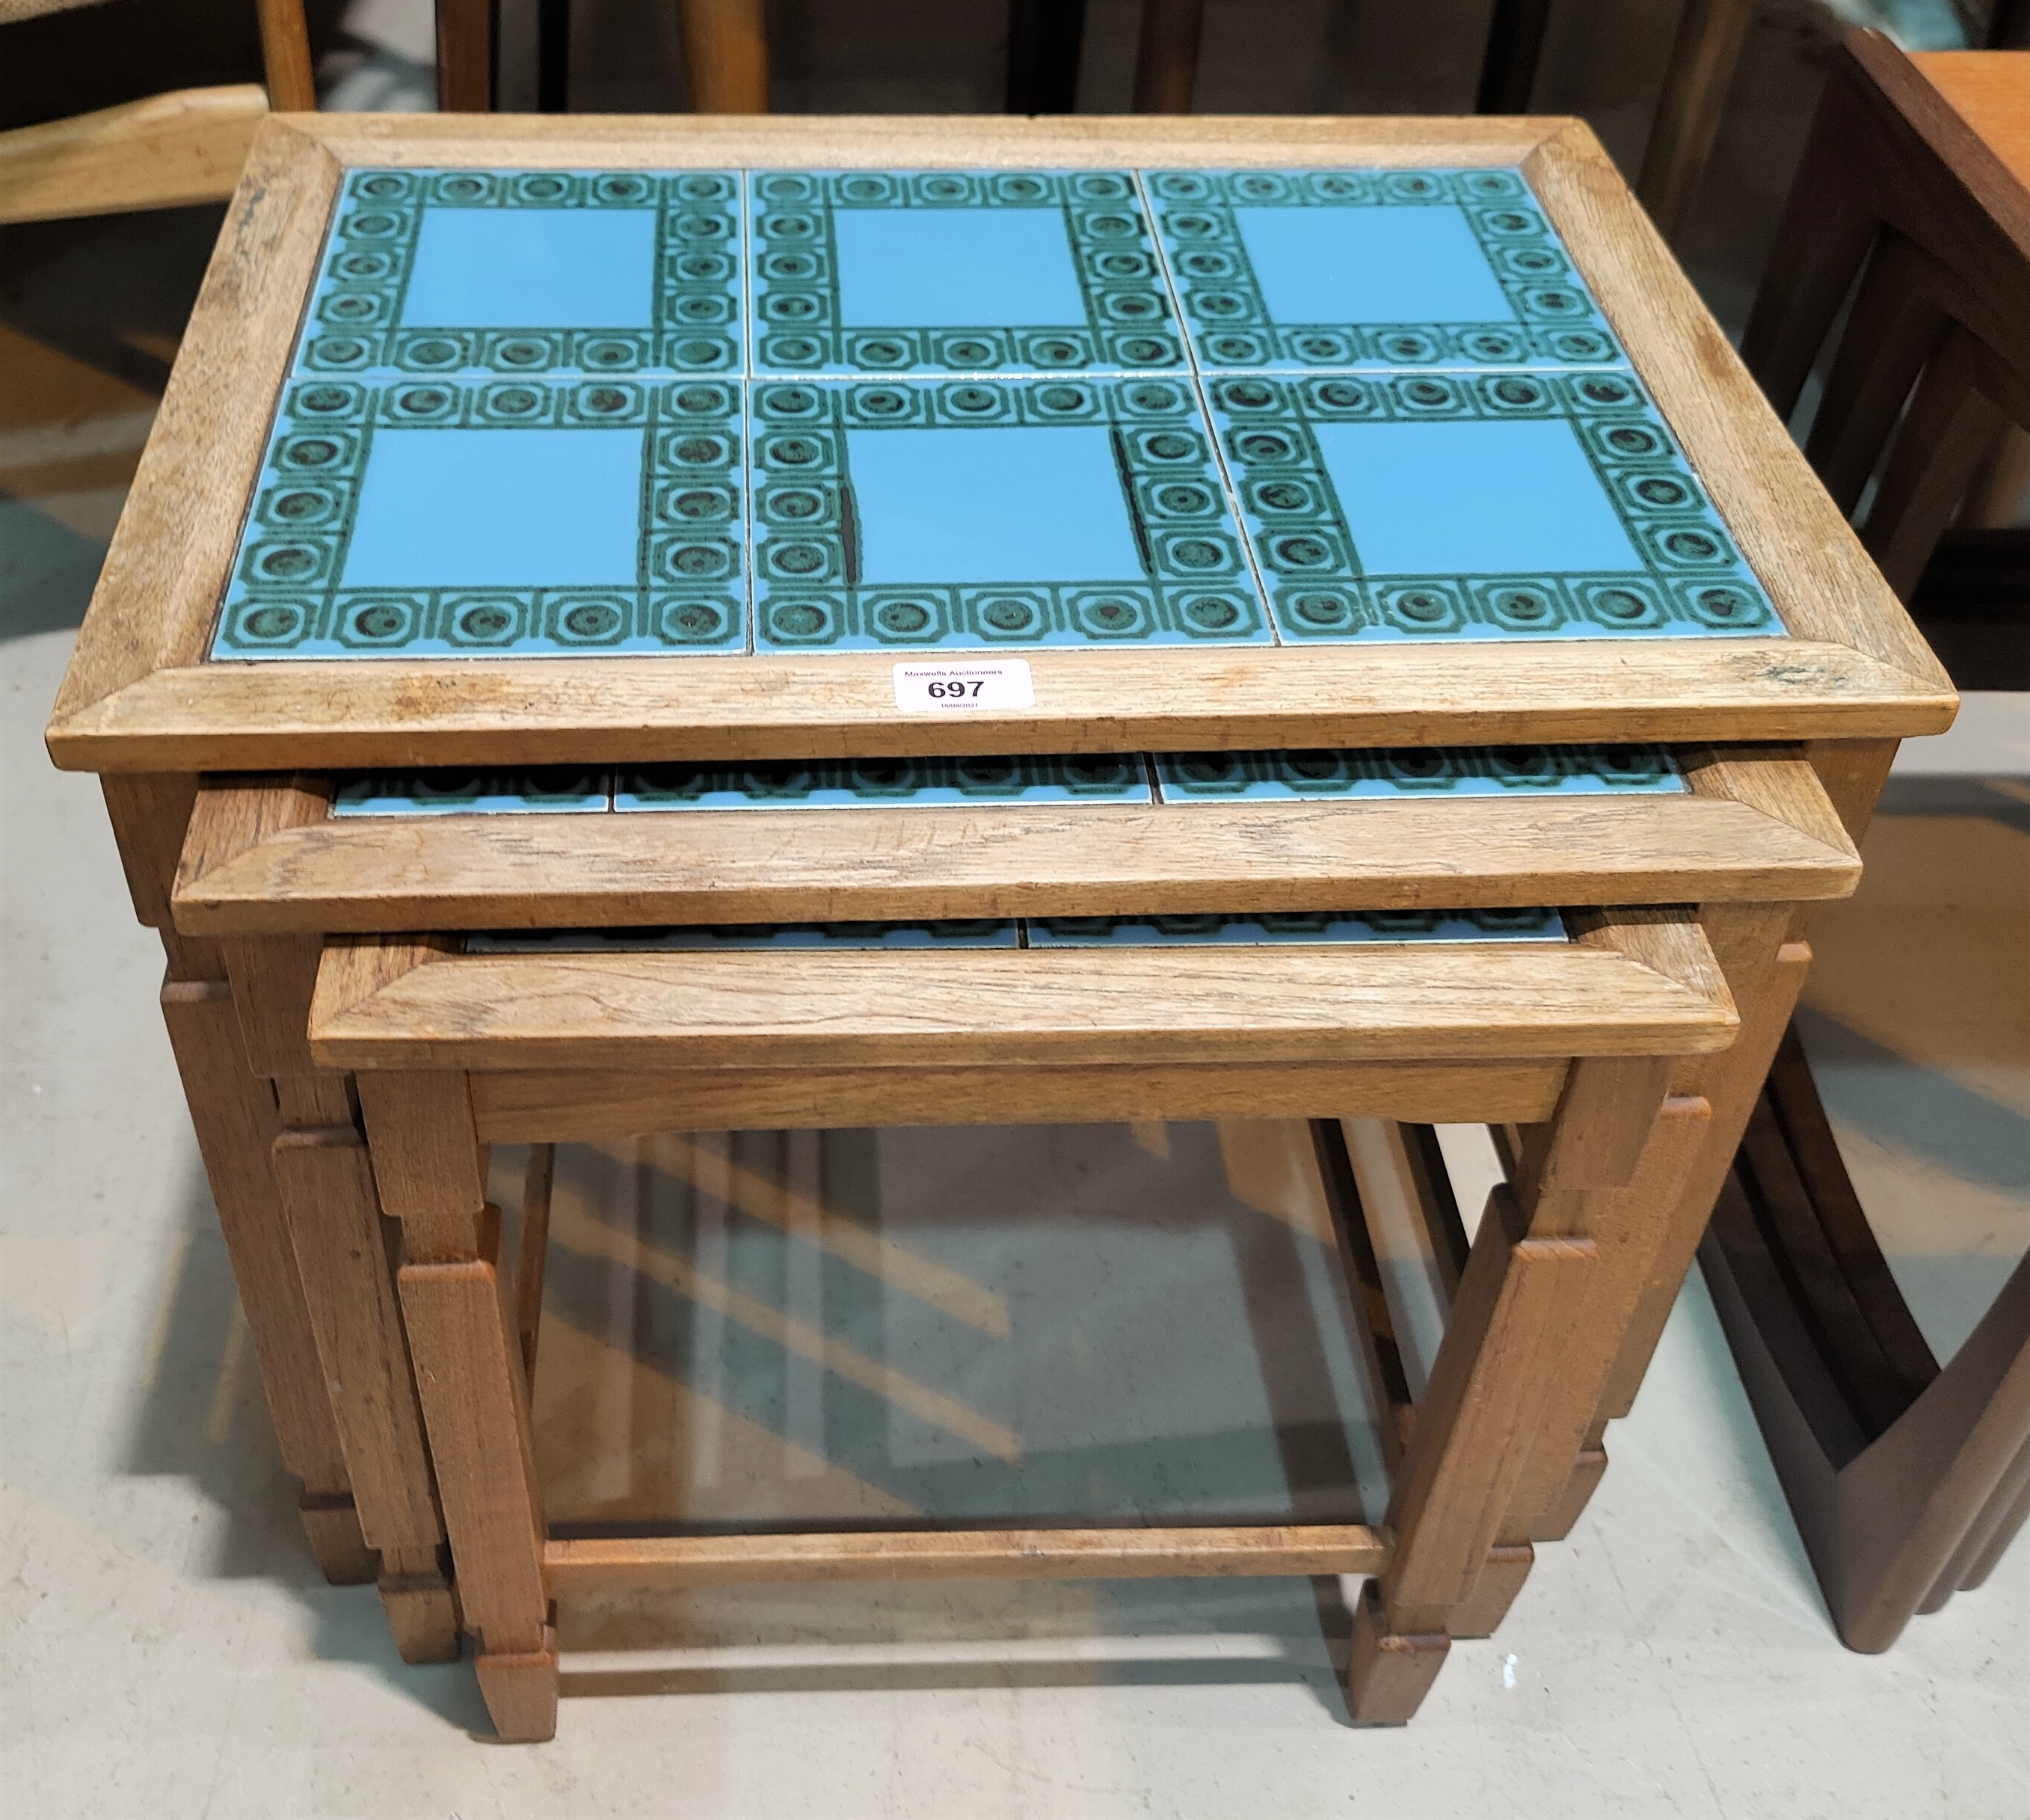 A 1970's set of 3 occasional tables with tile tops; a rustic style bench; a lightwood bar stool